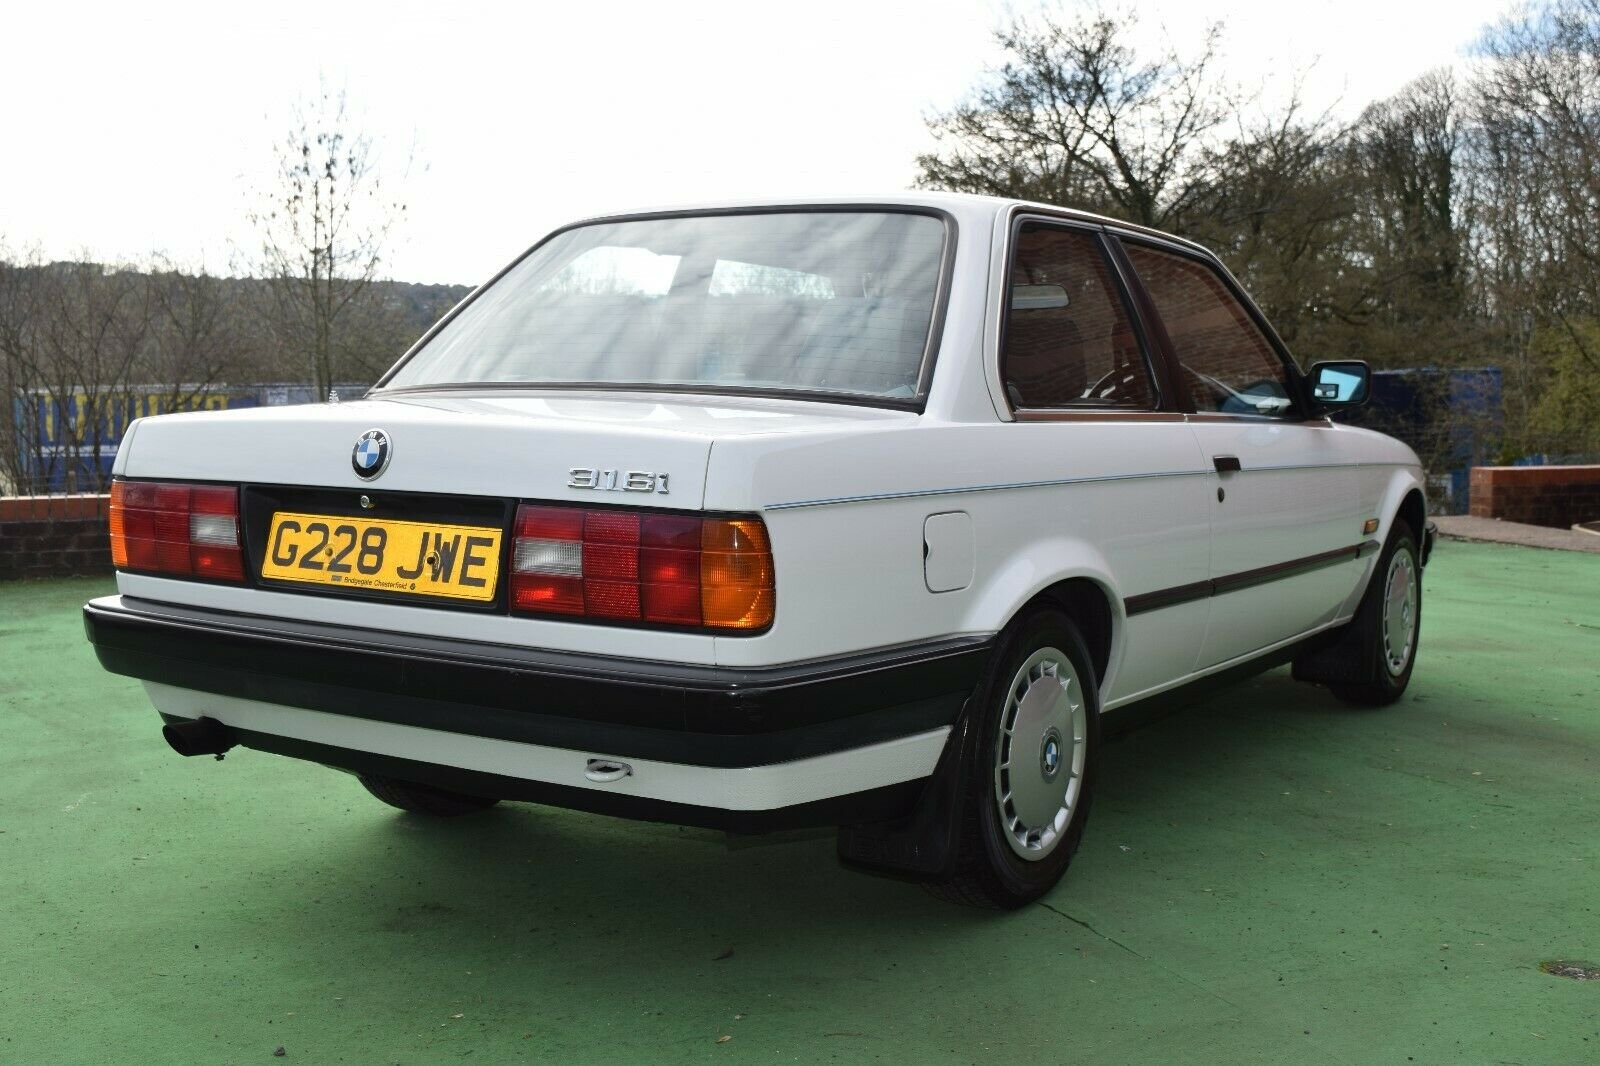 1989 BMW E30 3 Door, 1 owner from new, Low Miles, FSH For Sale (picture 2 of 6)